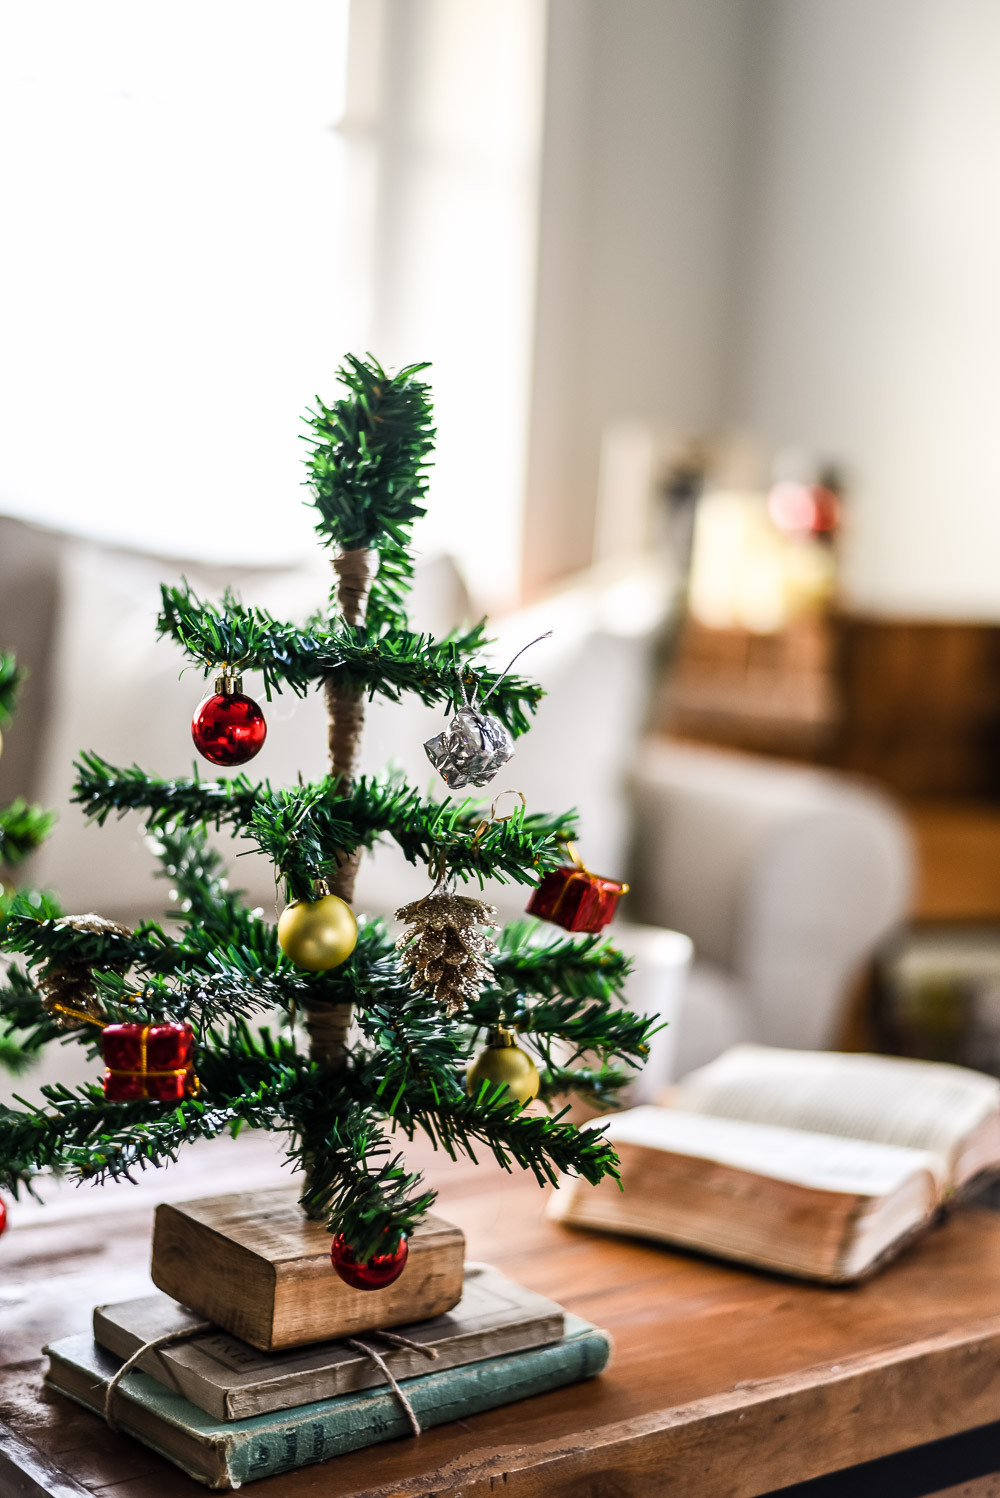 Best ideas about DIY Tabletop Christmas Tree . Save or Pin DIY Mini Tabletop Christmas Tree The Weathered Fox Now.